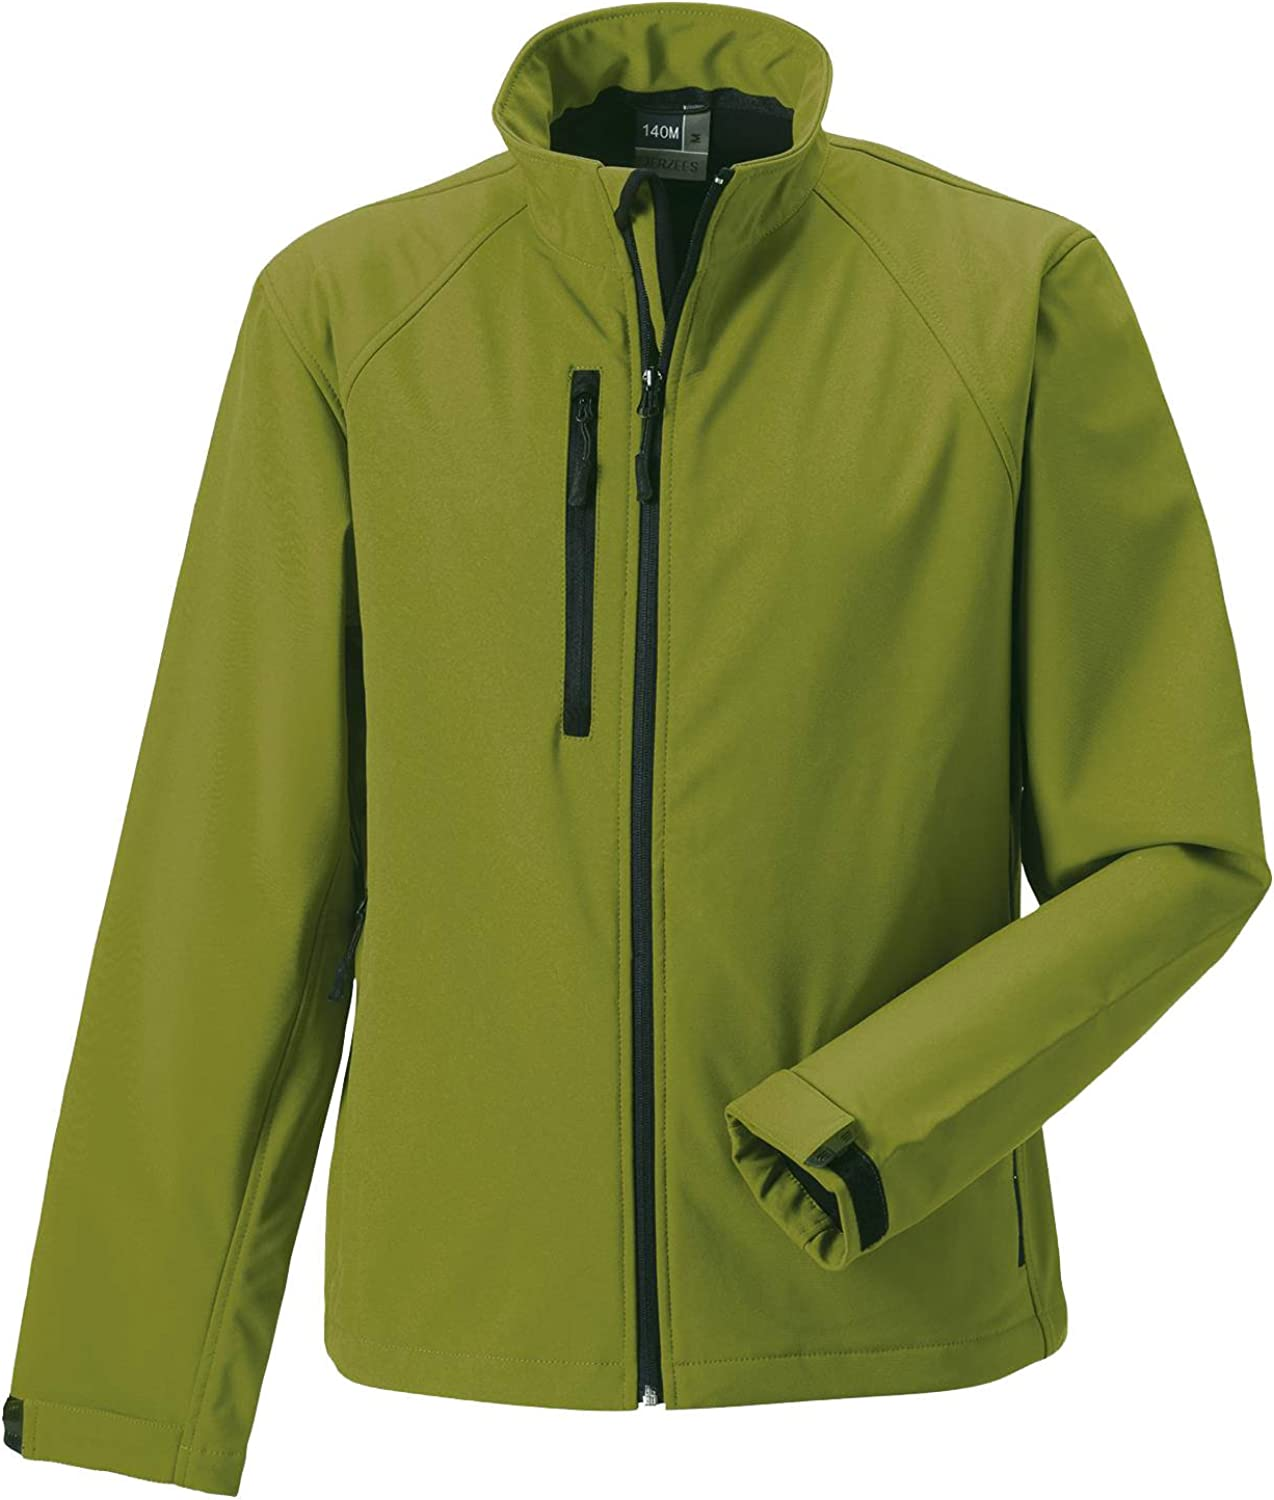 Denver New life Mall Russell Collection Softshell jacket